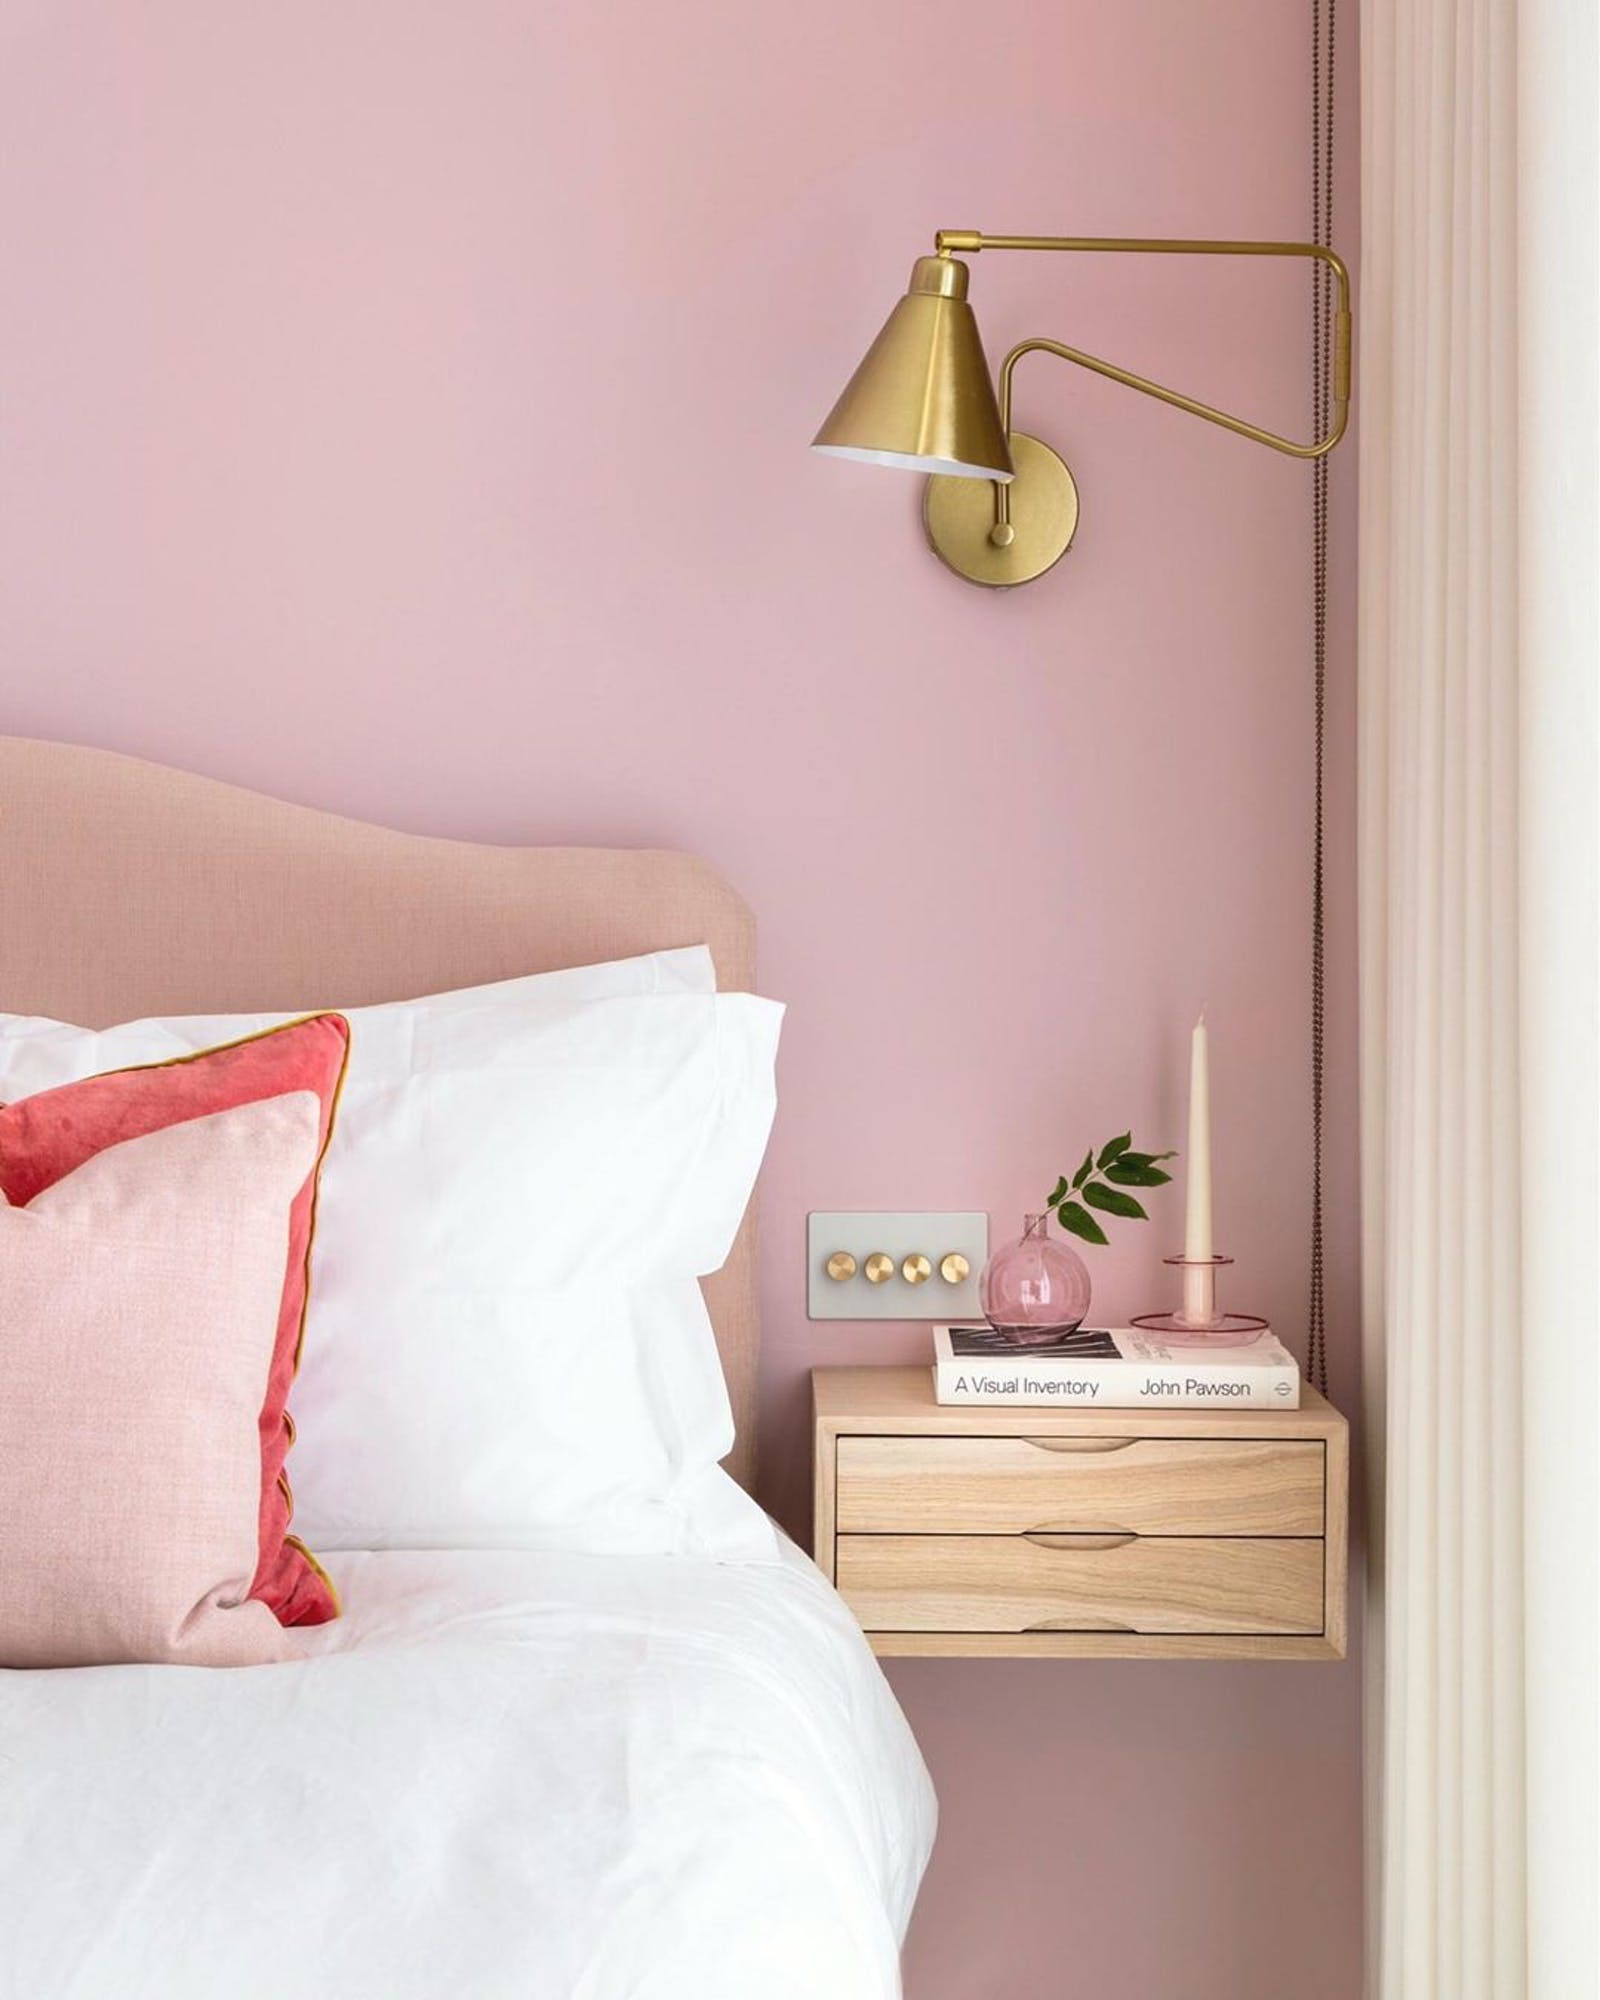 Pink bedroom wall in Lick Pink 03 and pink headboard with floating nightstand